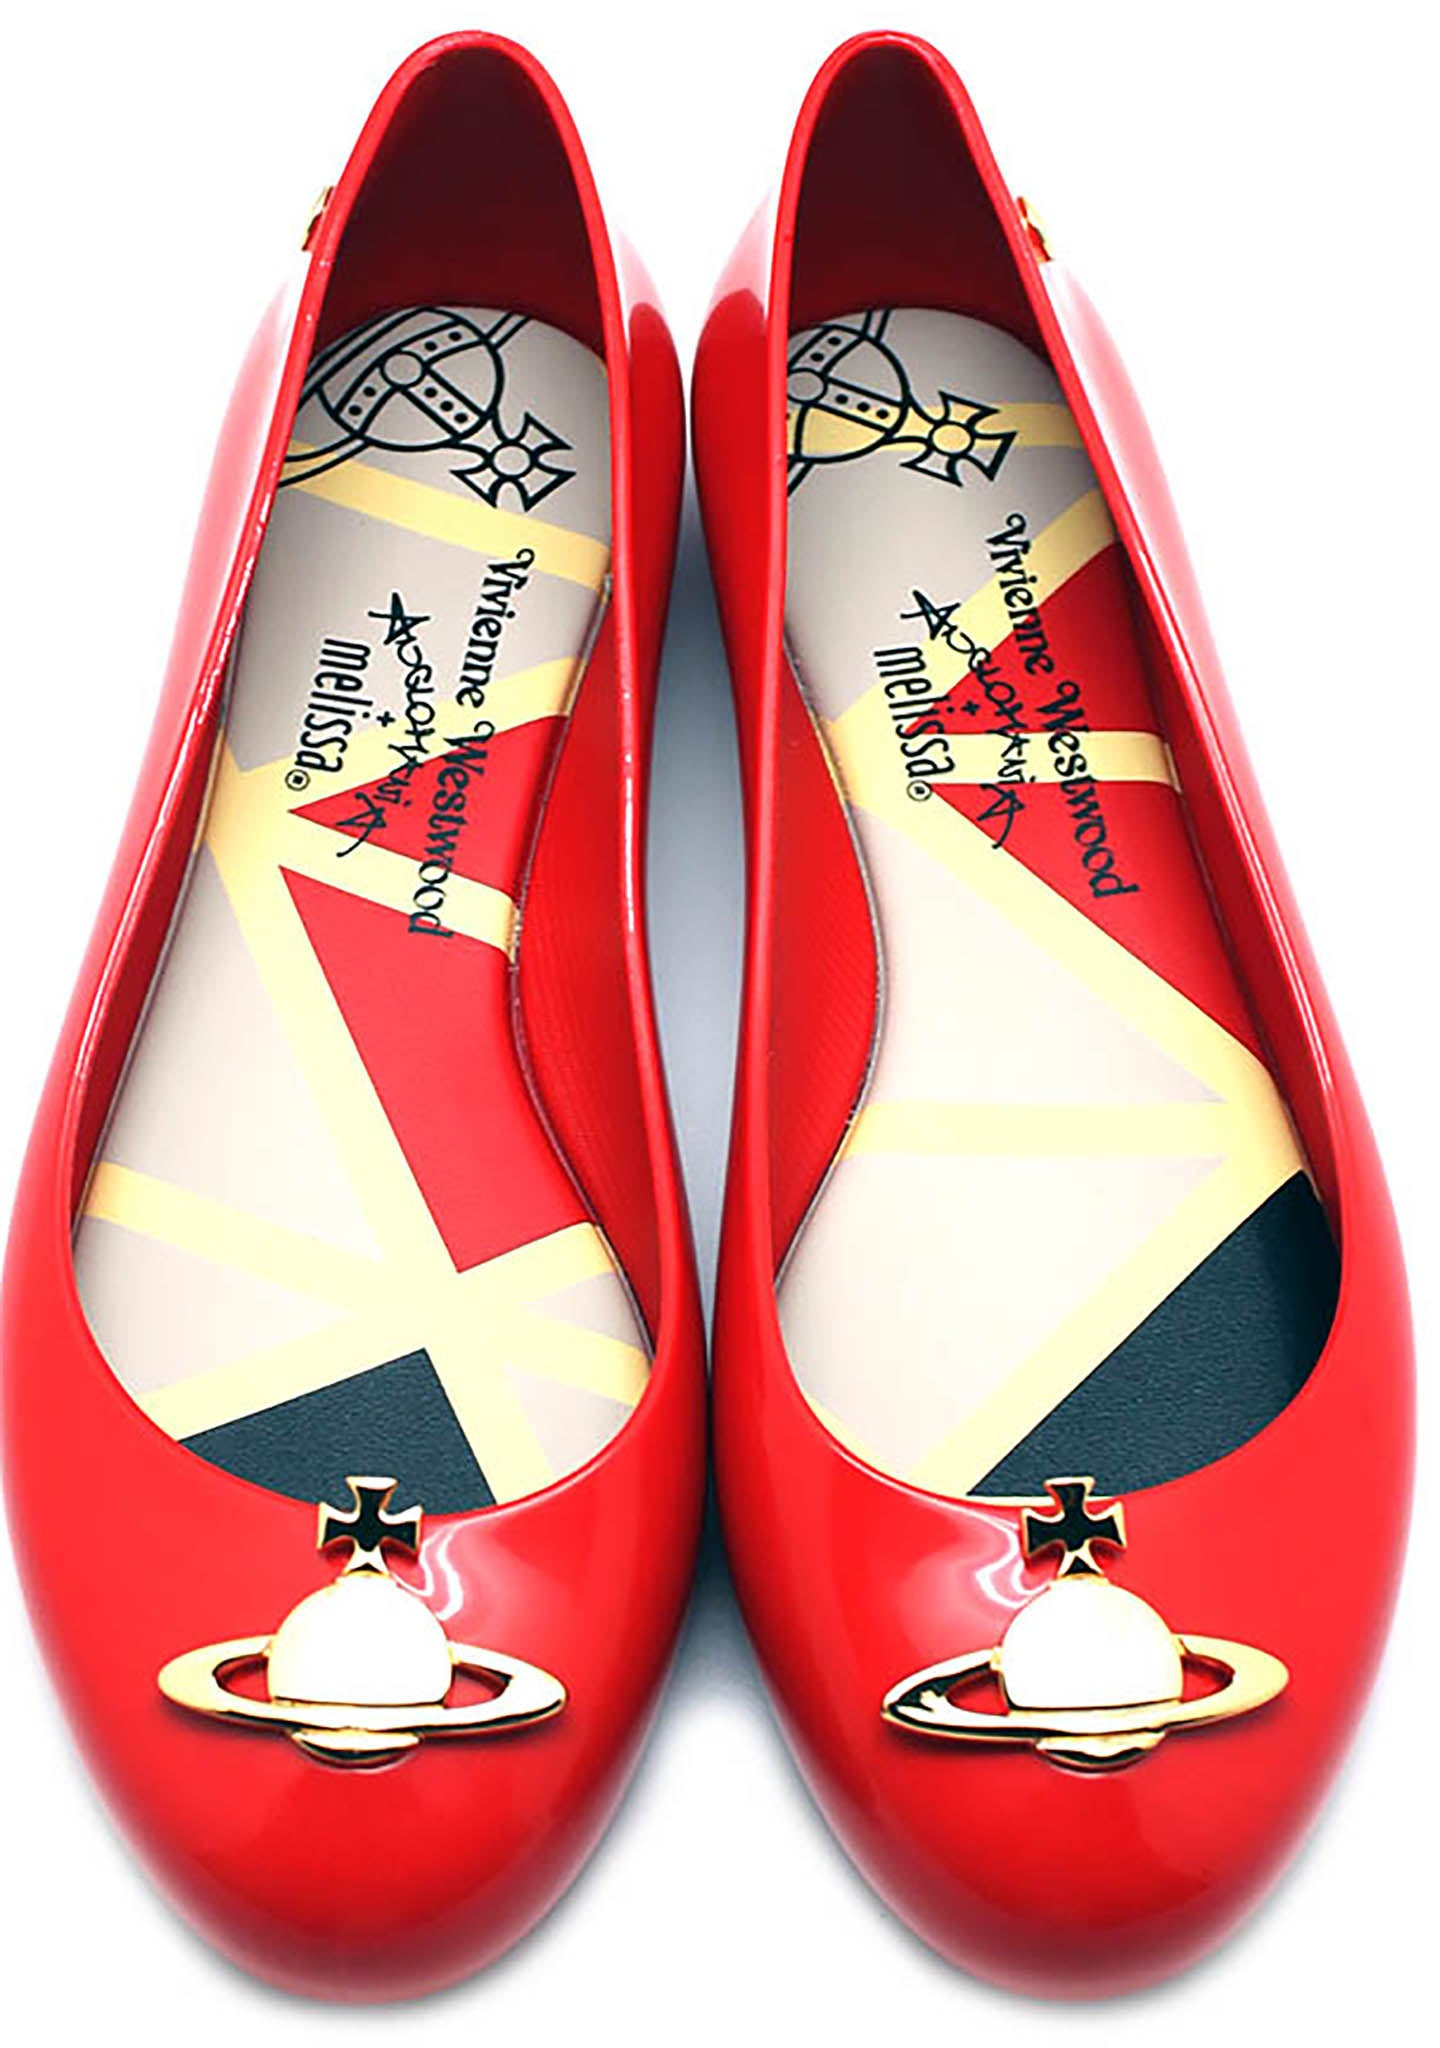 Vivienne Westwood Anglomania X Melissa Space Love II Flats in Red